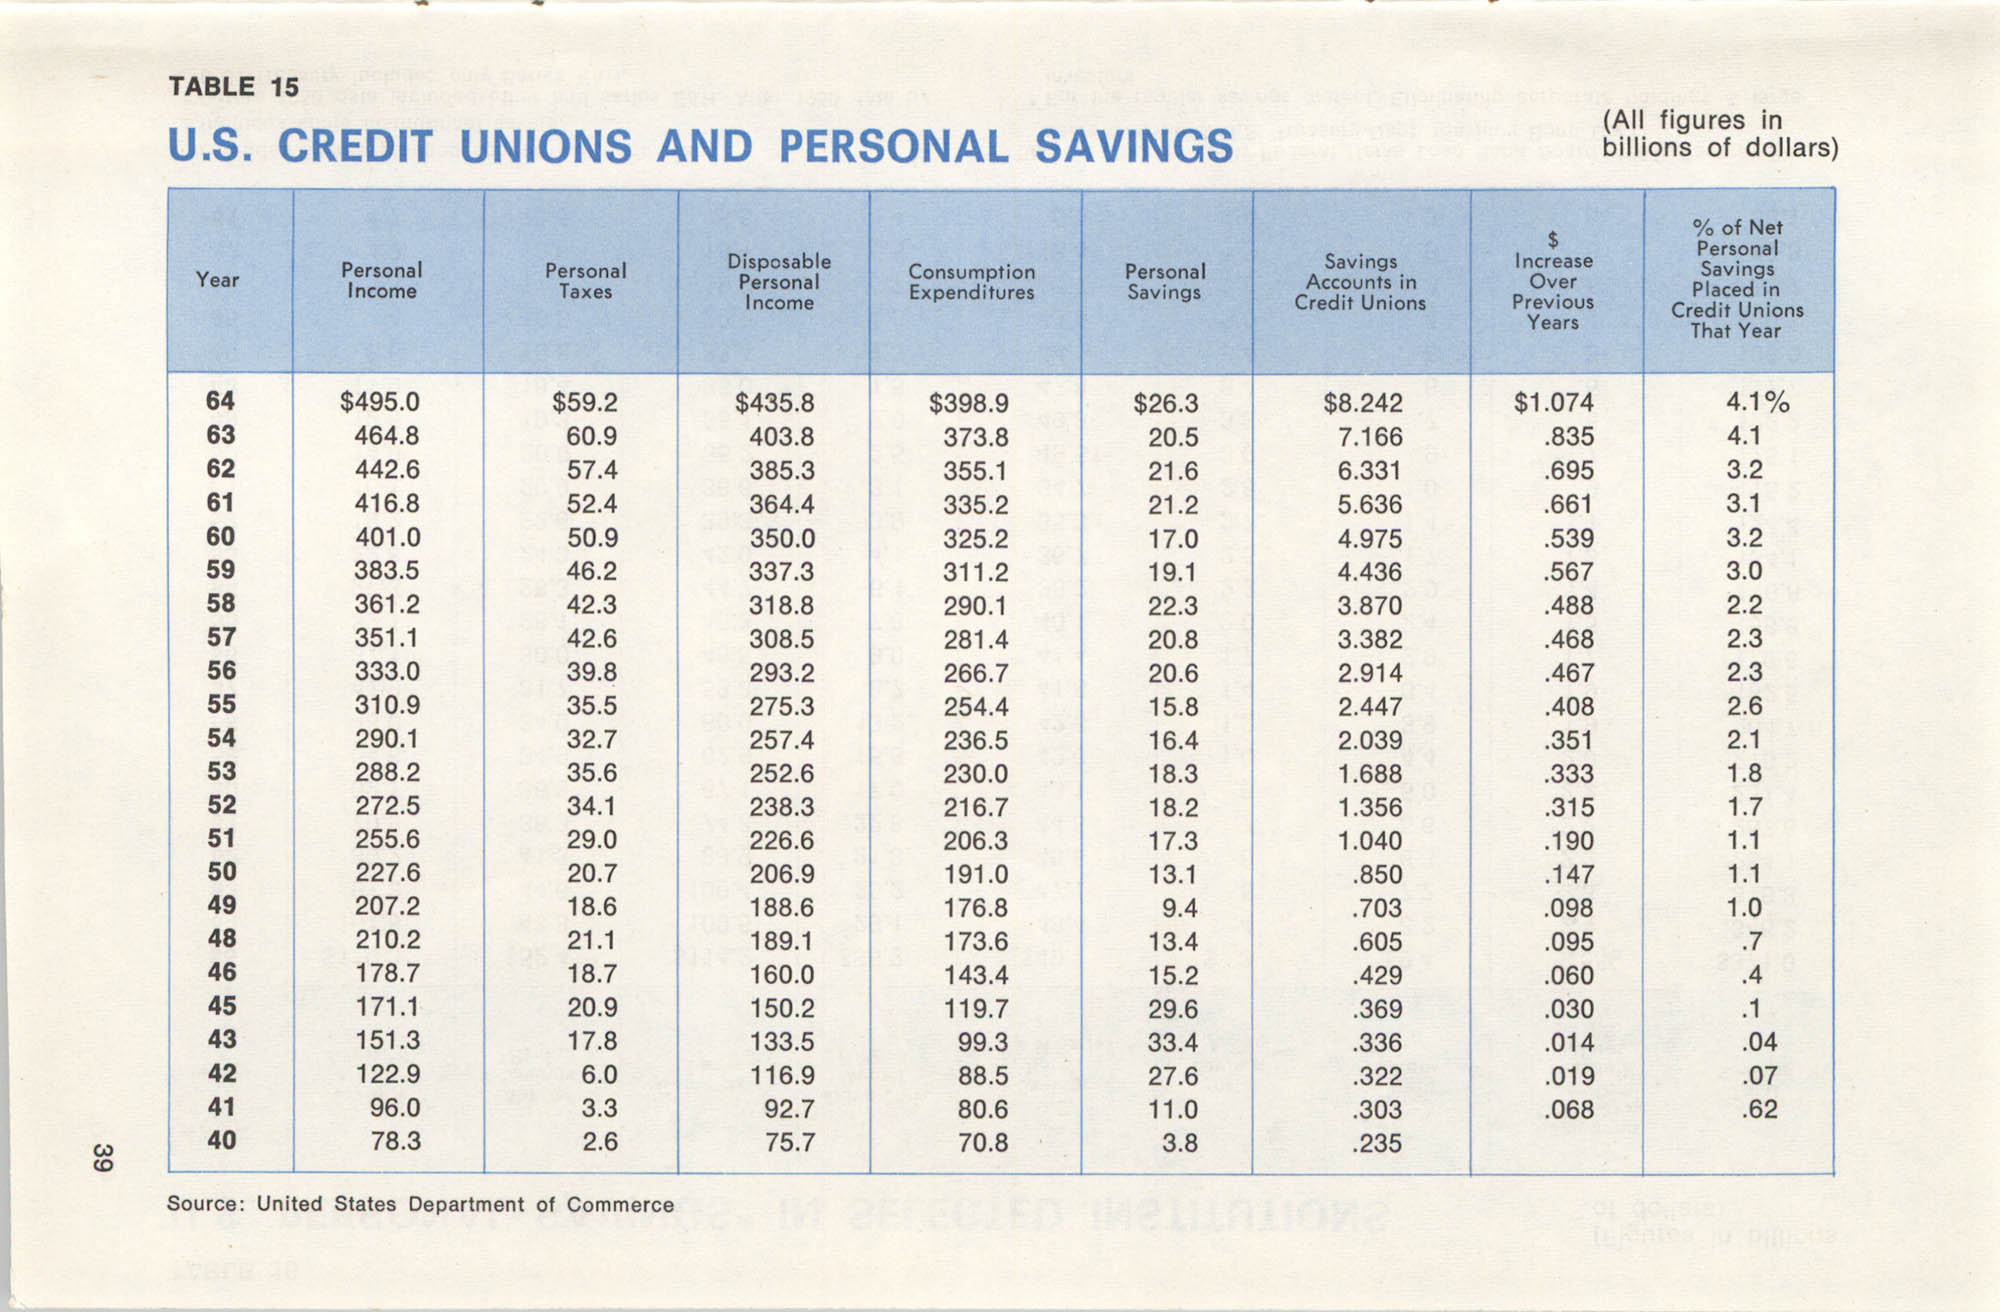 International Credit Union Yearbook, Page 39